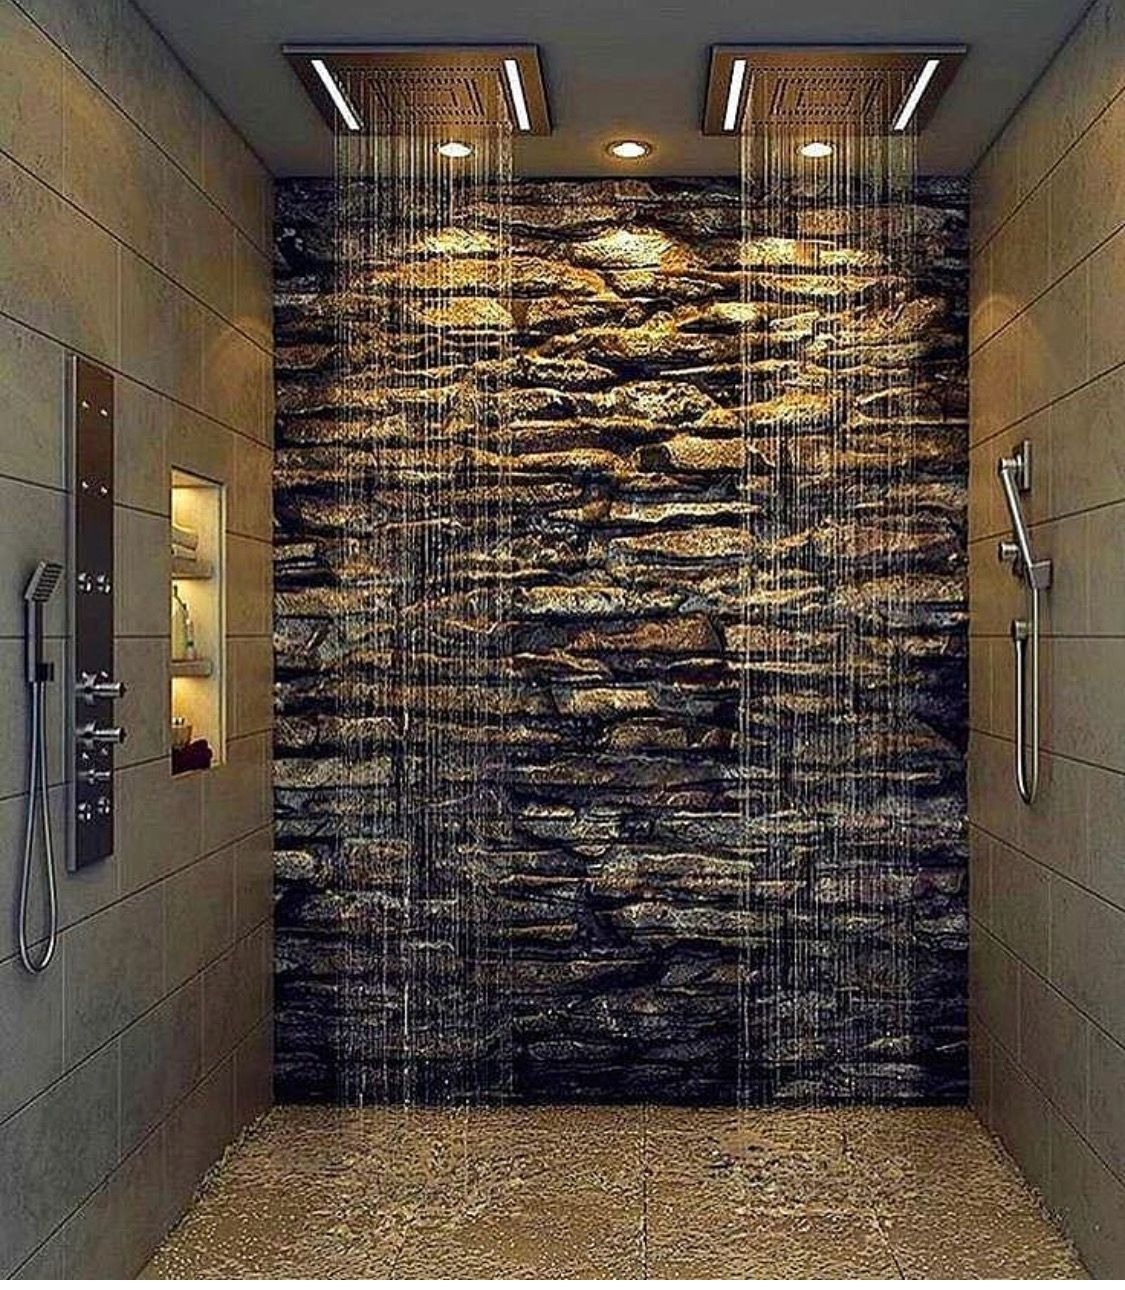 Love The Rainfall Shower Heads And The Look Of The Rock Wall